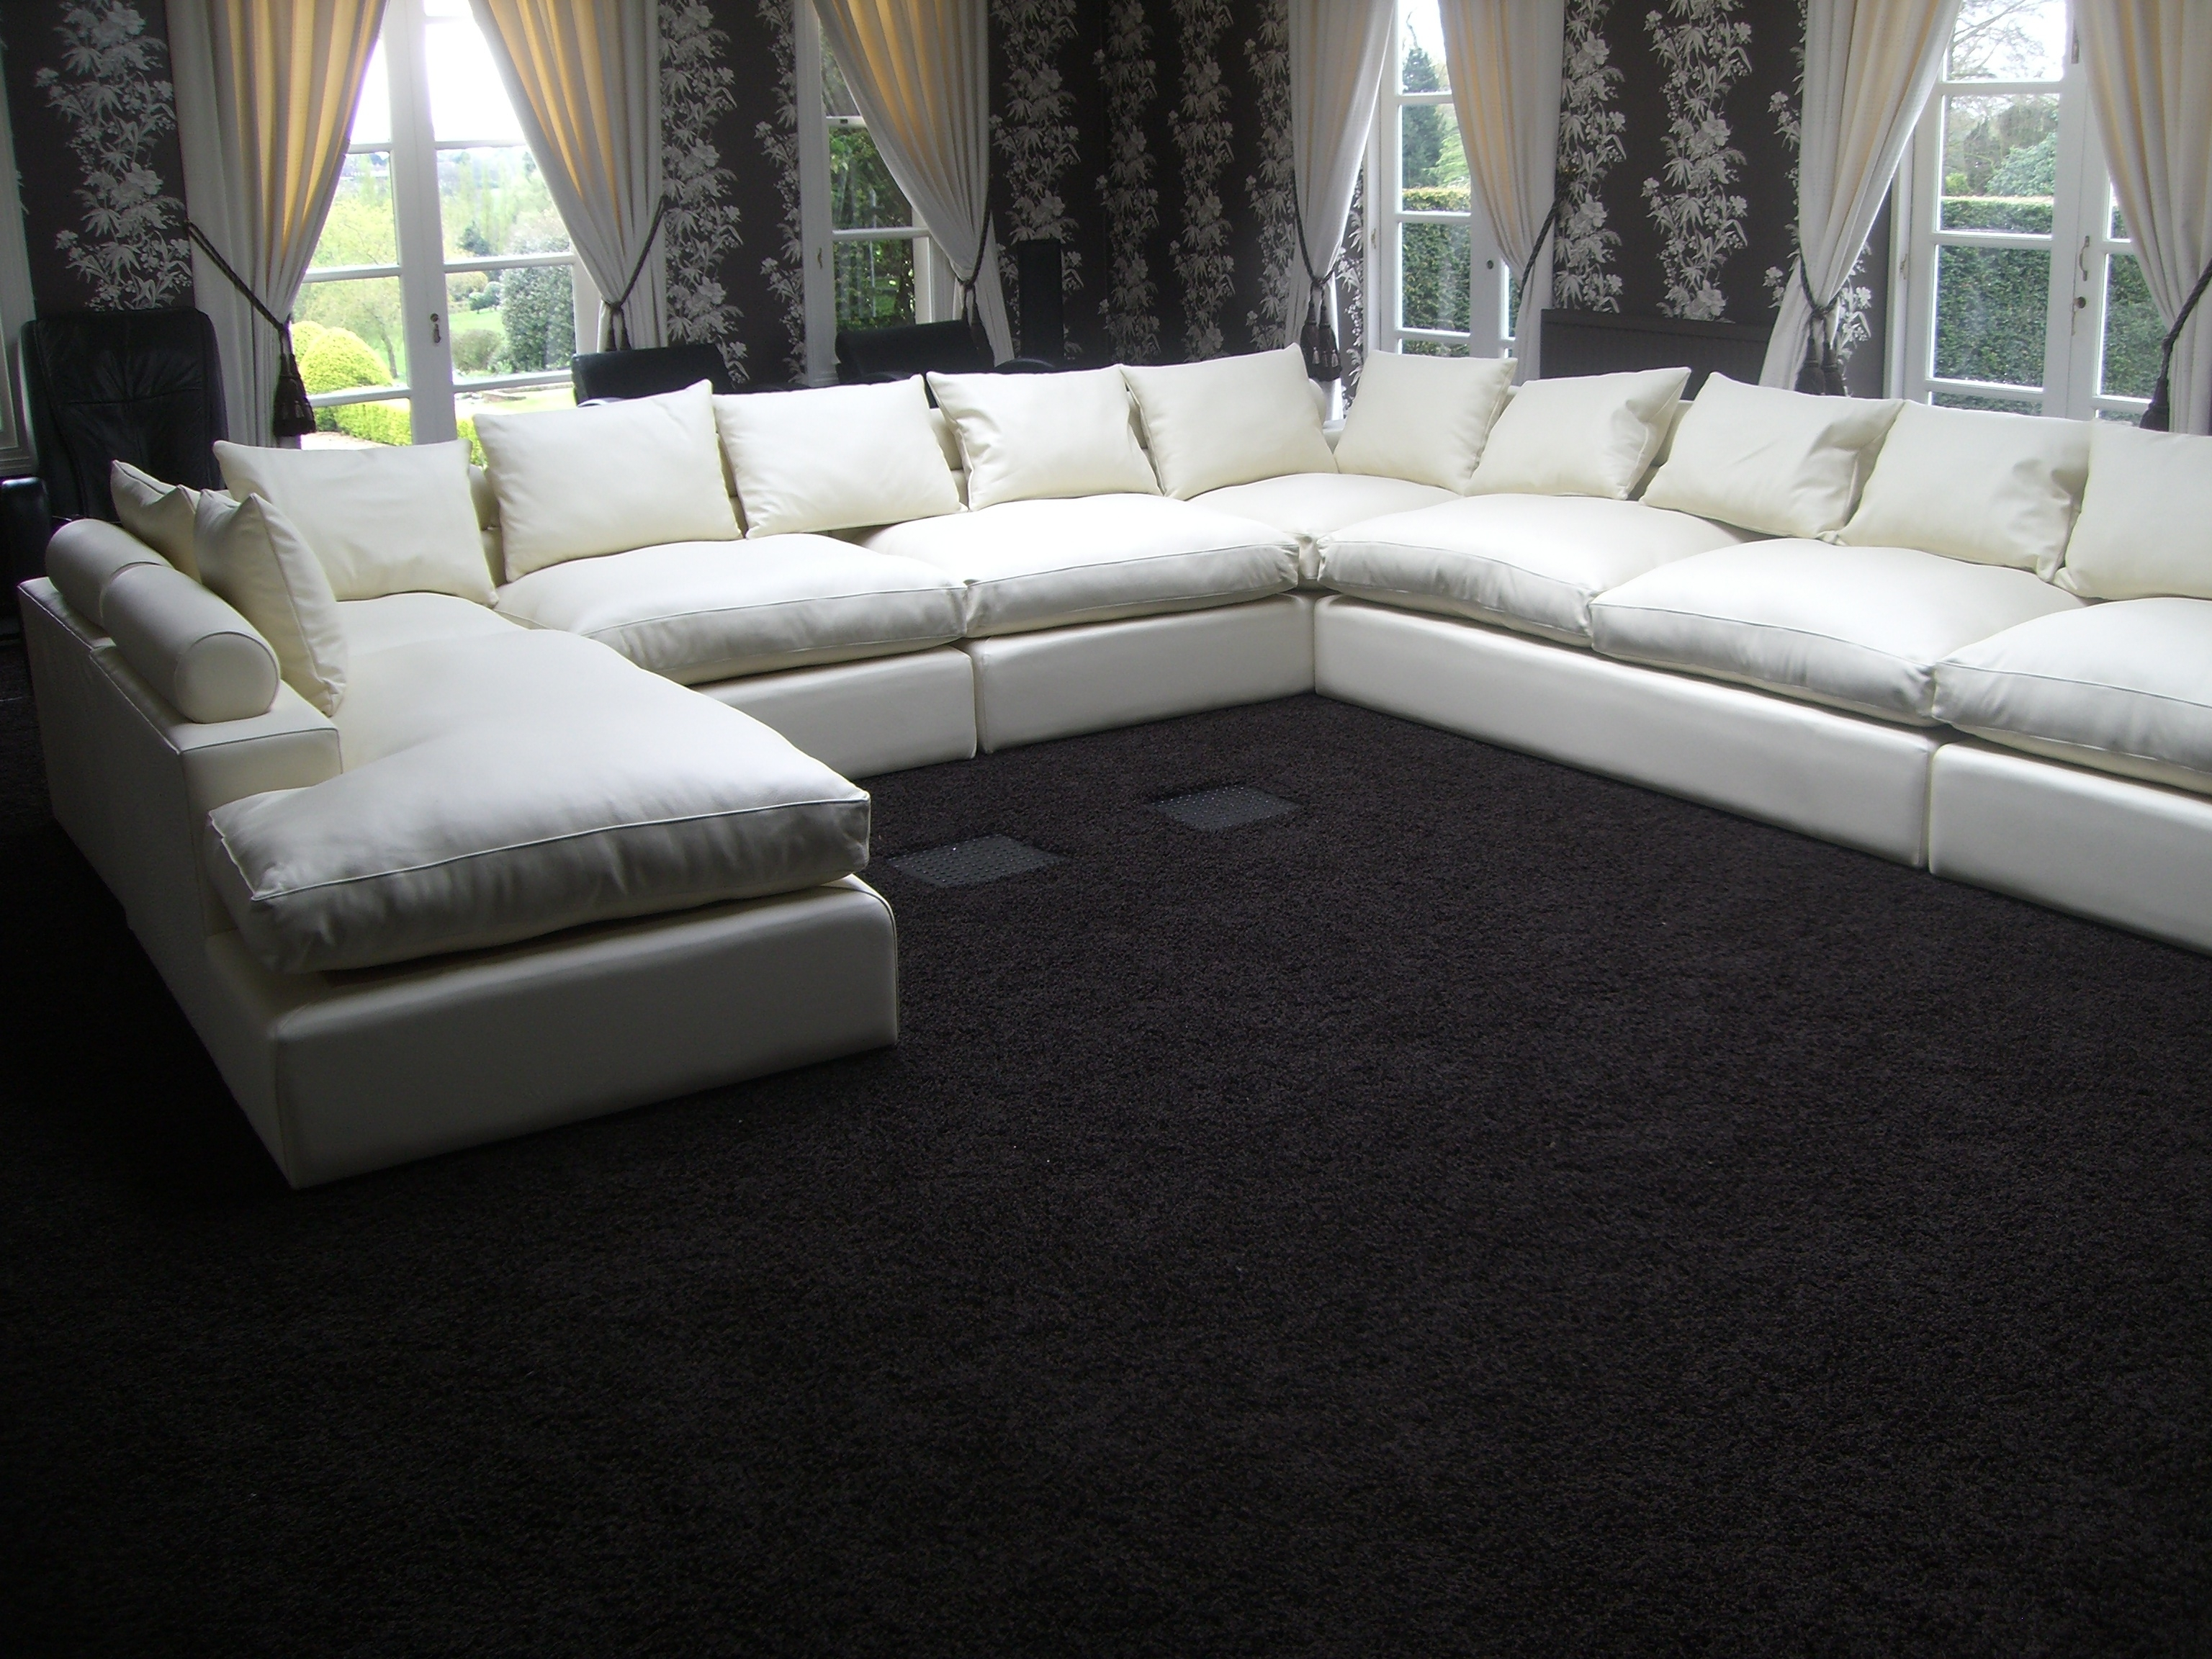 Large U Shaped Sofa – Fjellkjeden Inside Trendy U Shaped Sectionals (View 19 of 20)